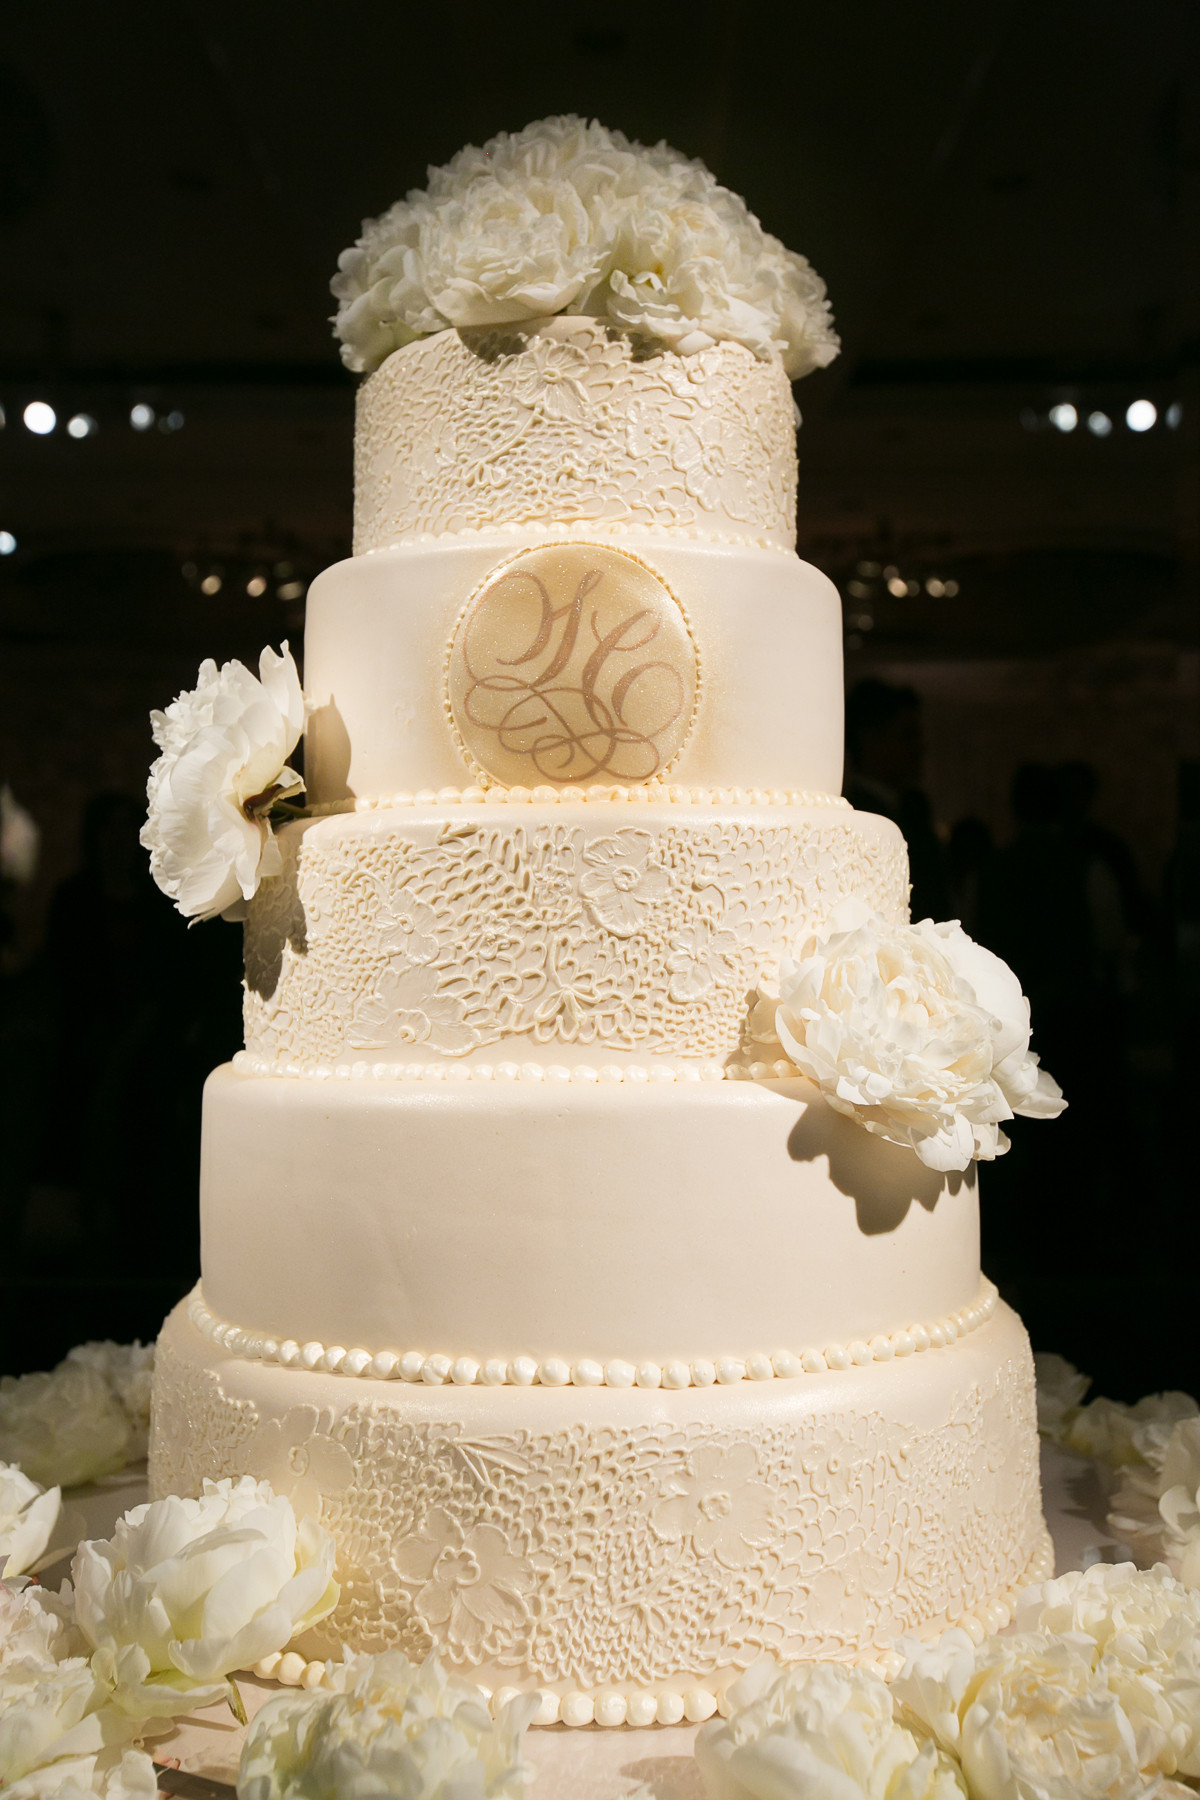 Wedding Cakes Lace  Wedding Cakes Pretty Wedding Confections with Lace